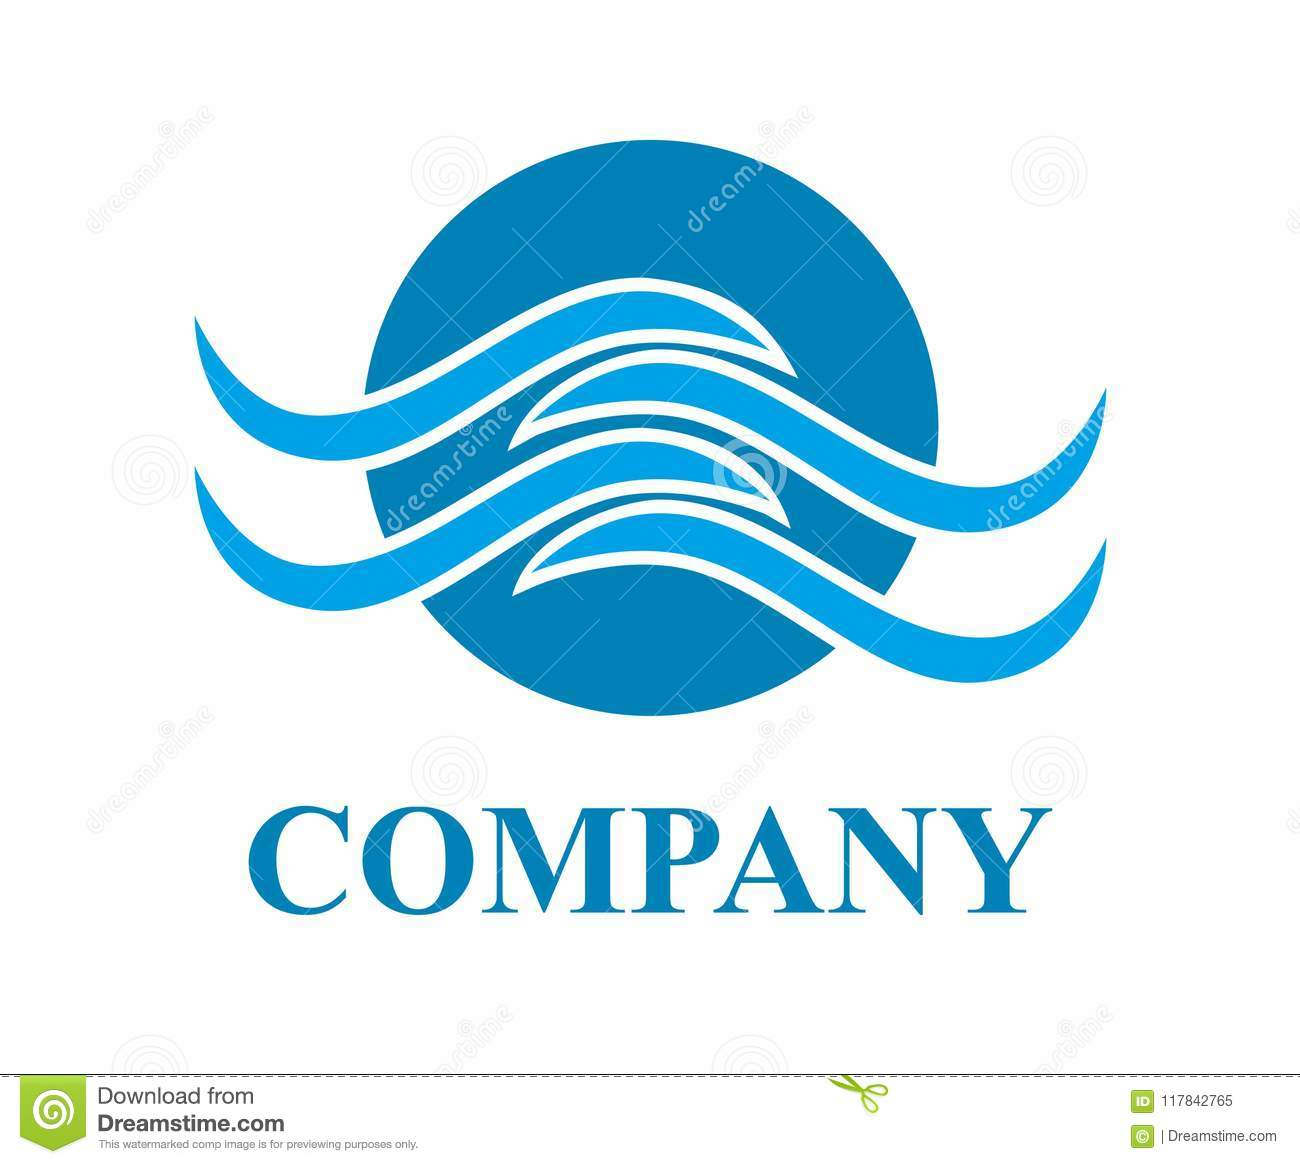 blue sea or ocean water wave beach vector logo design idea template illustration concept with blue color for pool sport water recreation need